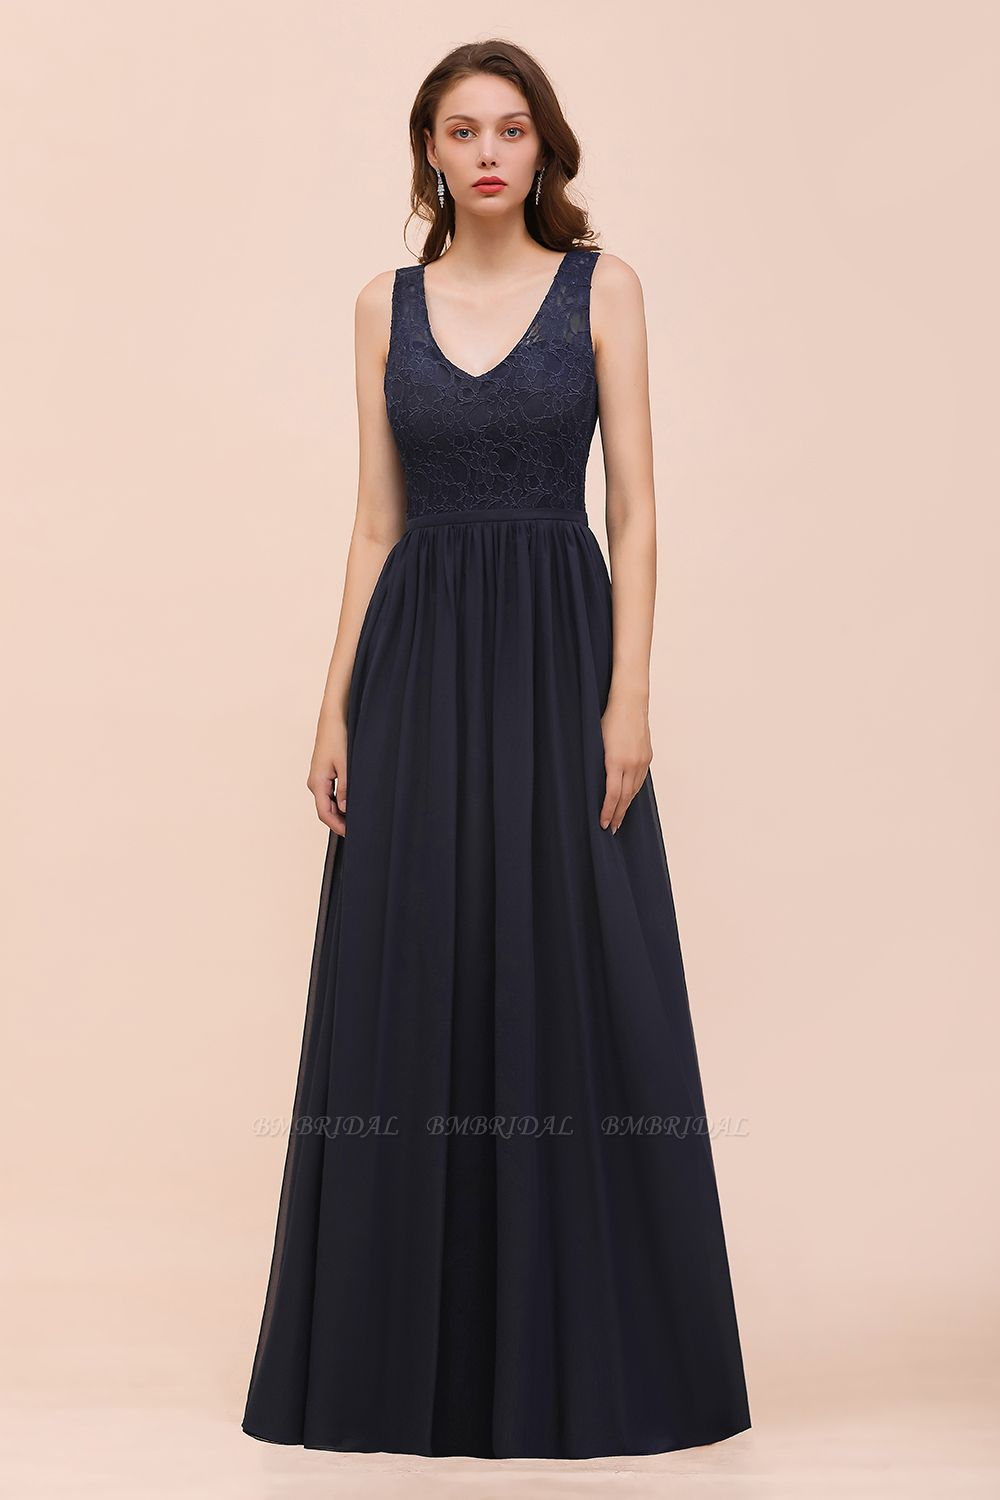 BMbridal Affordable Lace V-Neck Navy Bridesmaid Dress with Open Back